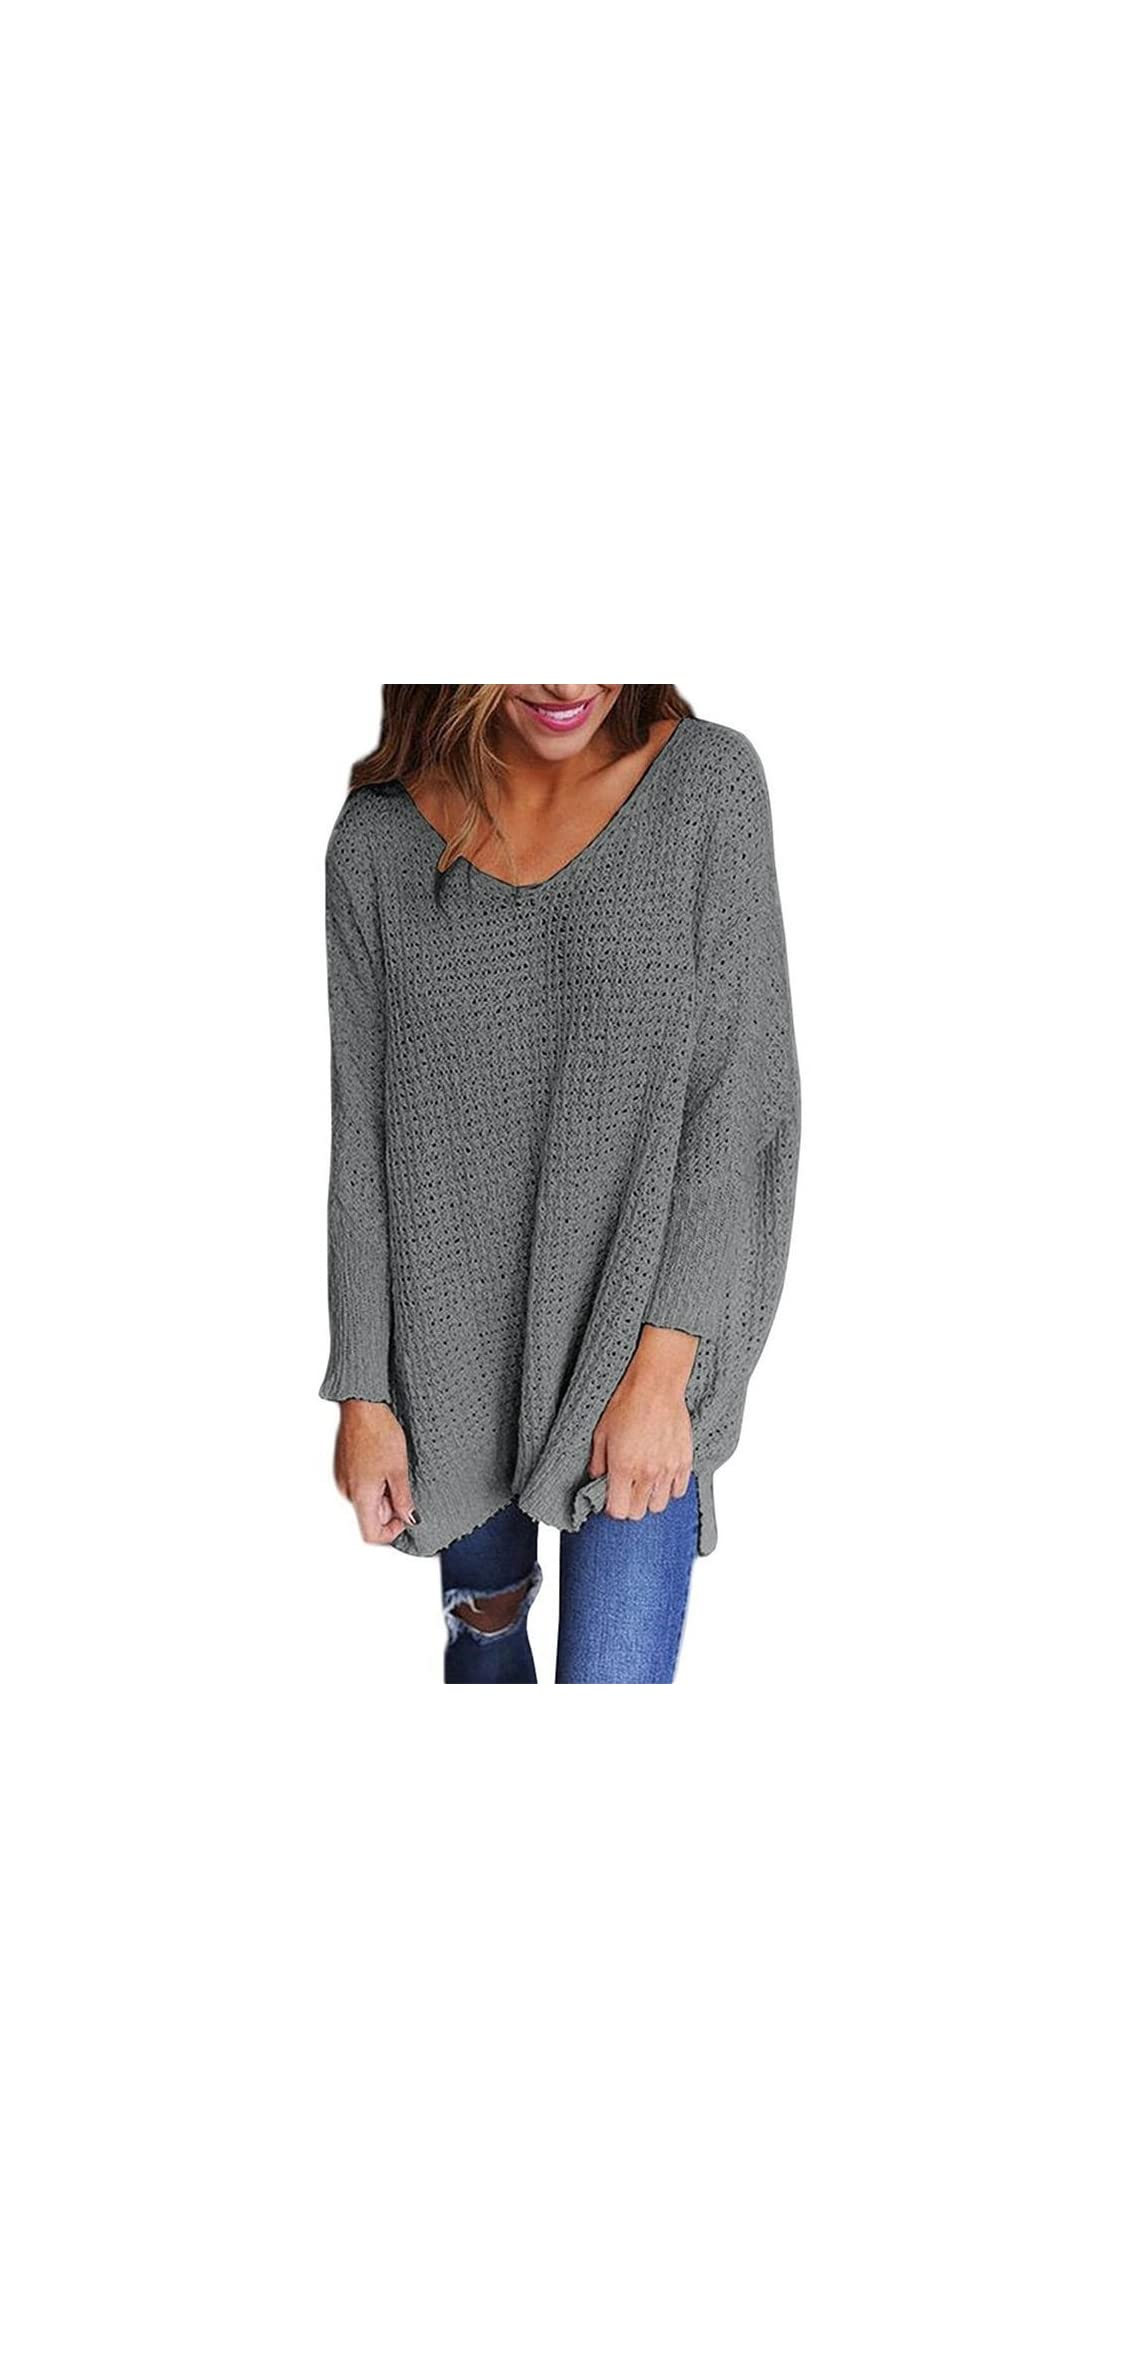 Womens Oversized Sweaters Casual V Neck Long Sleeve Knit